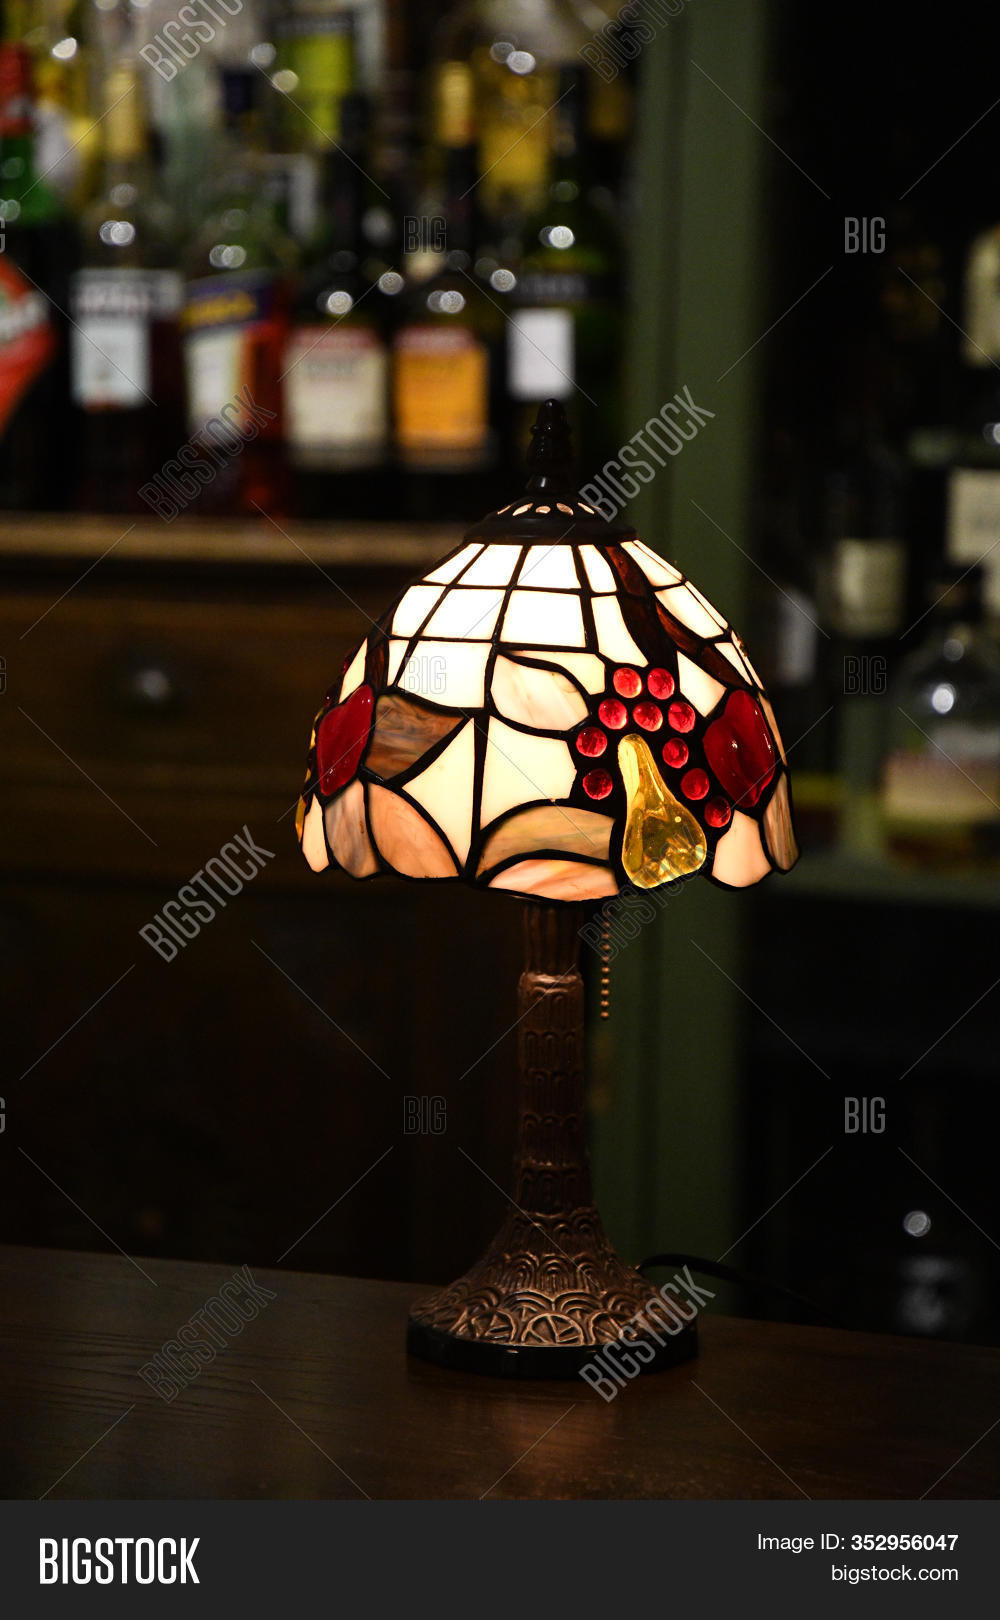 Picture of: Retro Table Lamp Image Photo Free Trial Bigstock